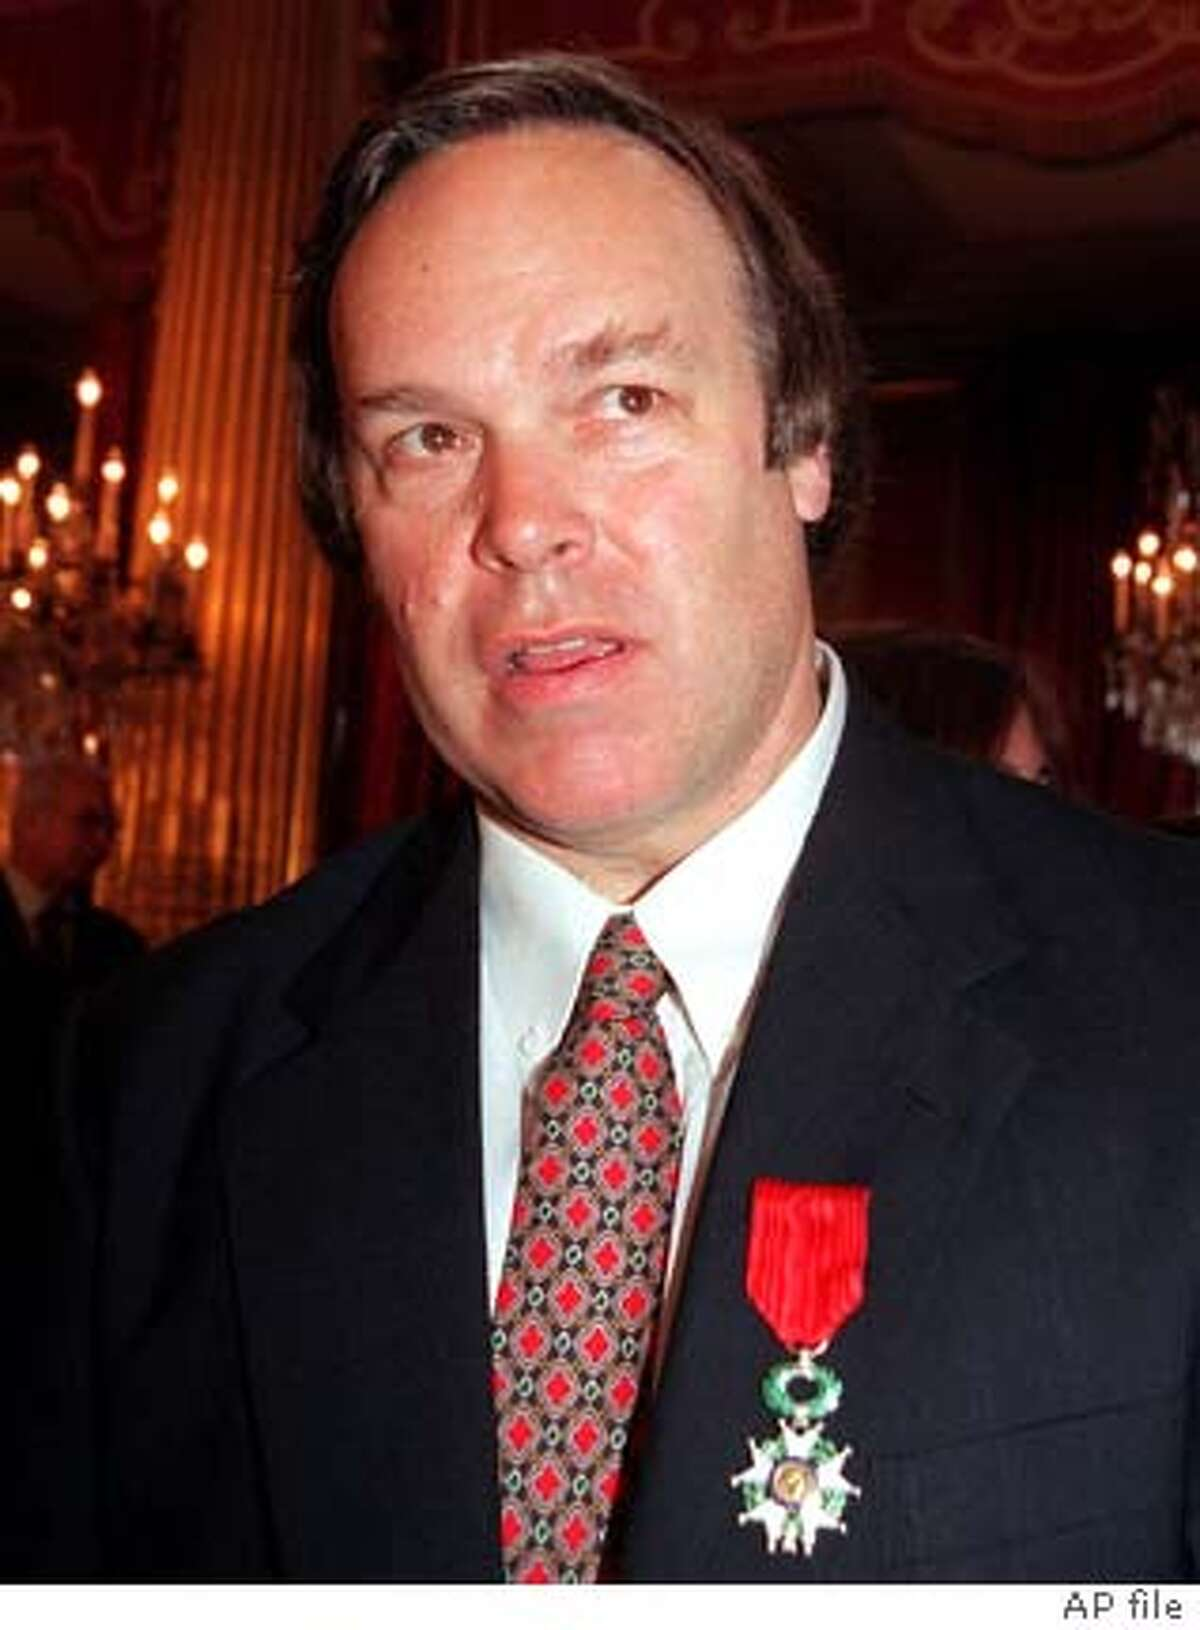 PARKER-C-08JAN03-FD-AP --- American wine critic Robert Parker after he was awarded Knight in the Legion of Honor by French President Jacques Chirac, Tuesday June 22, 1999 at the Elysee Palace in Paris. Parker, founder and editor of the bimonthly Wine Advocate newsletter, is also the author of several books on French wines.(AP PHOTO/Jacques Brinon) ALSO RAN 03/06/03